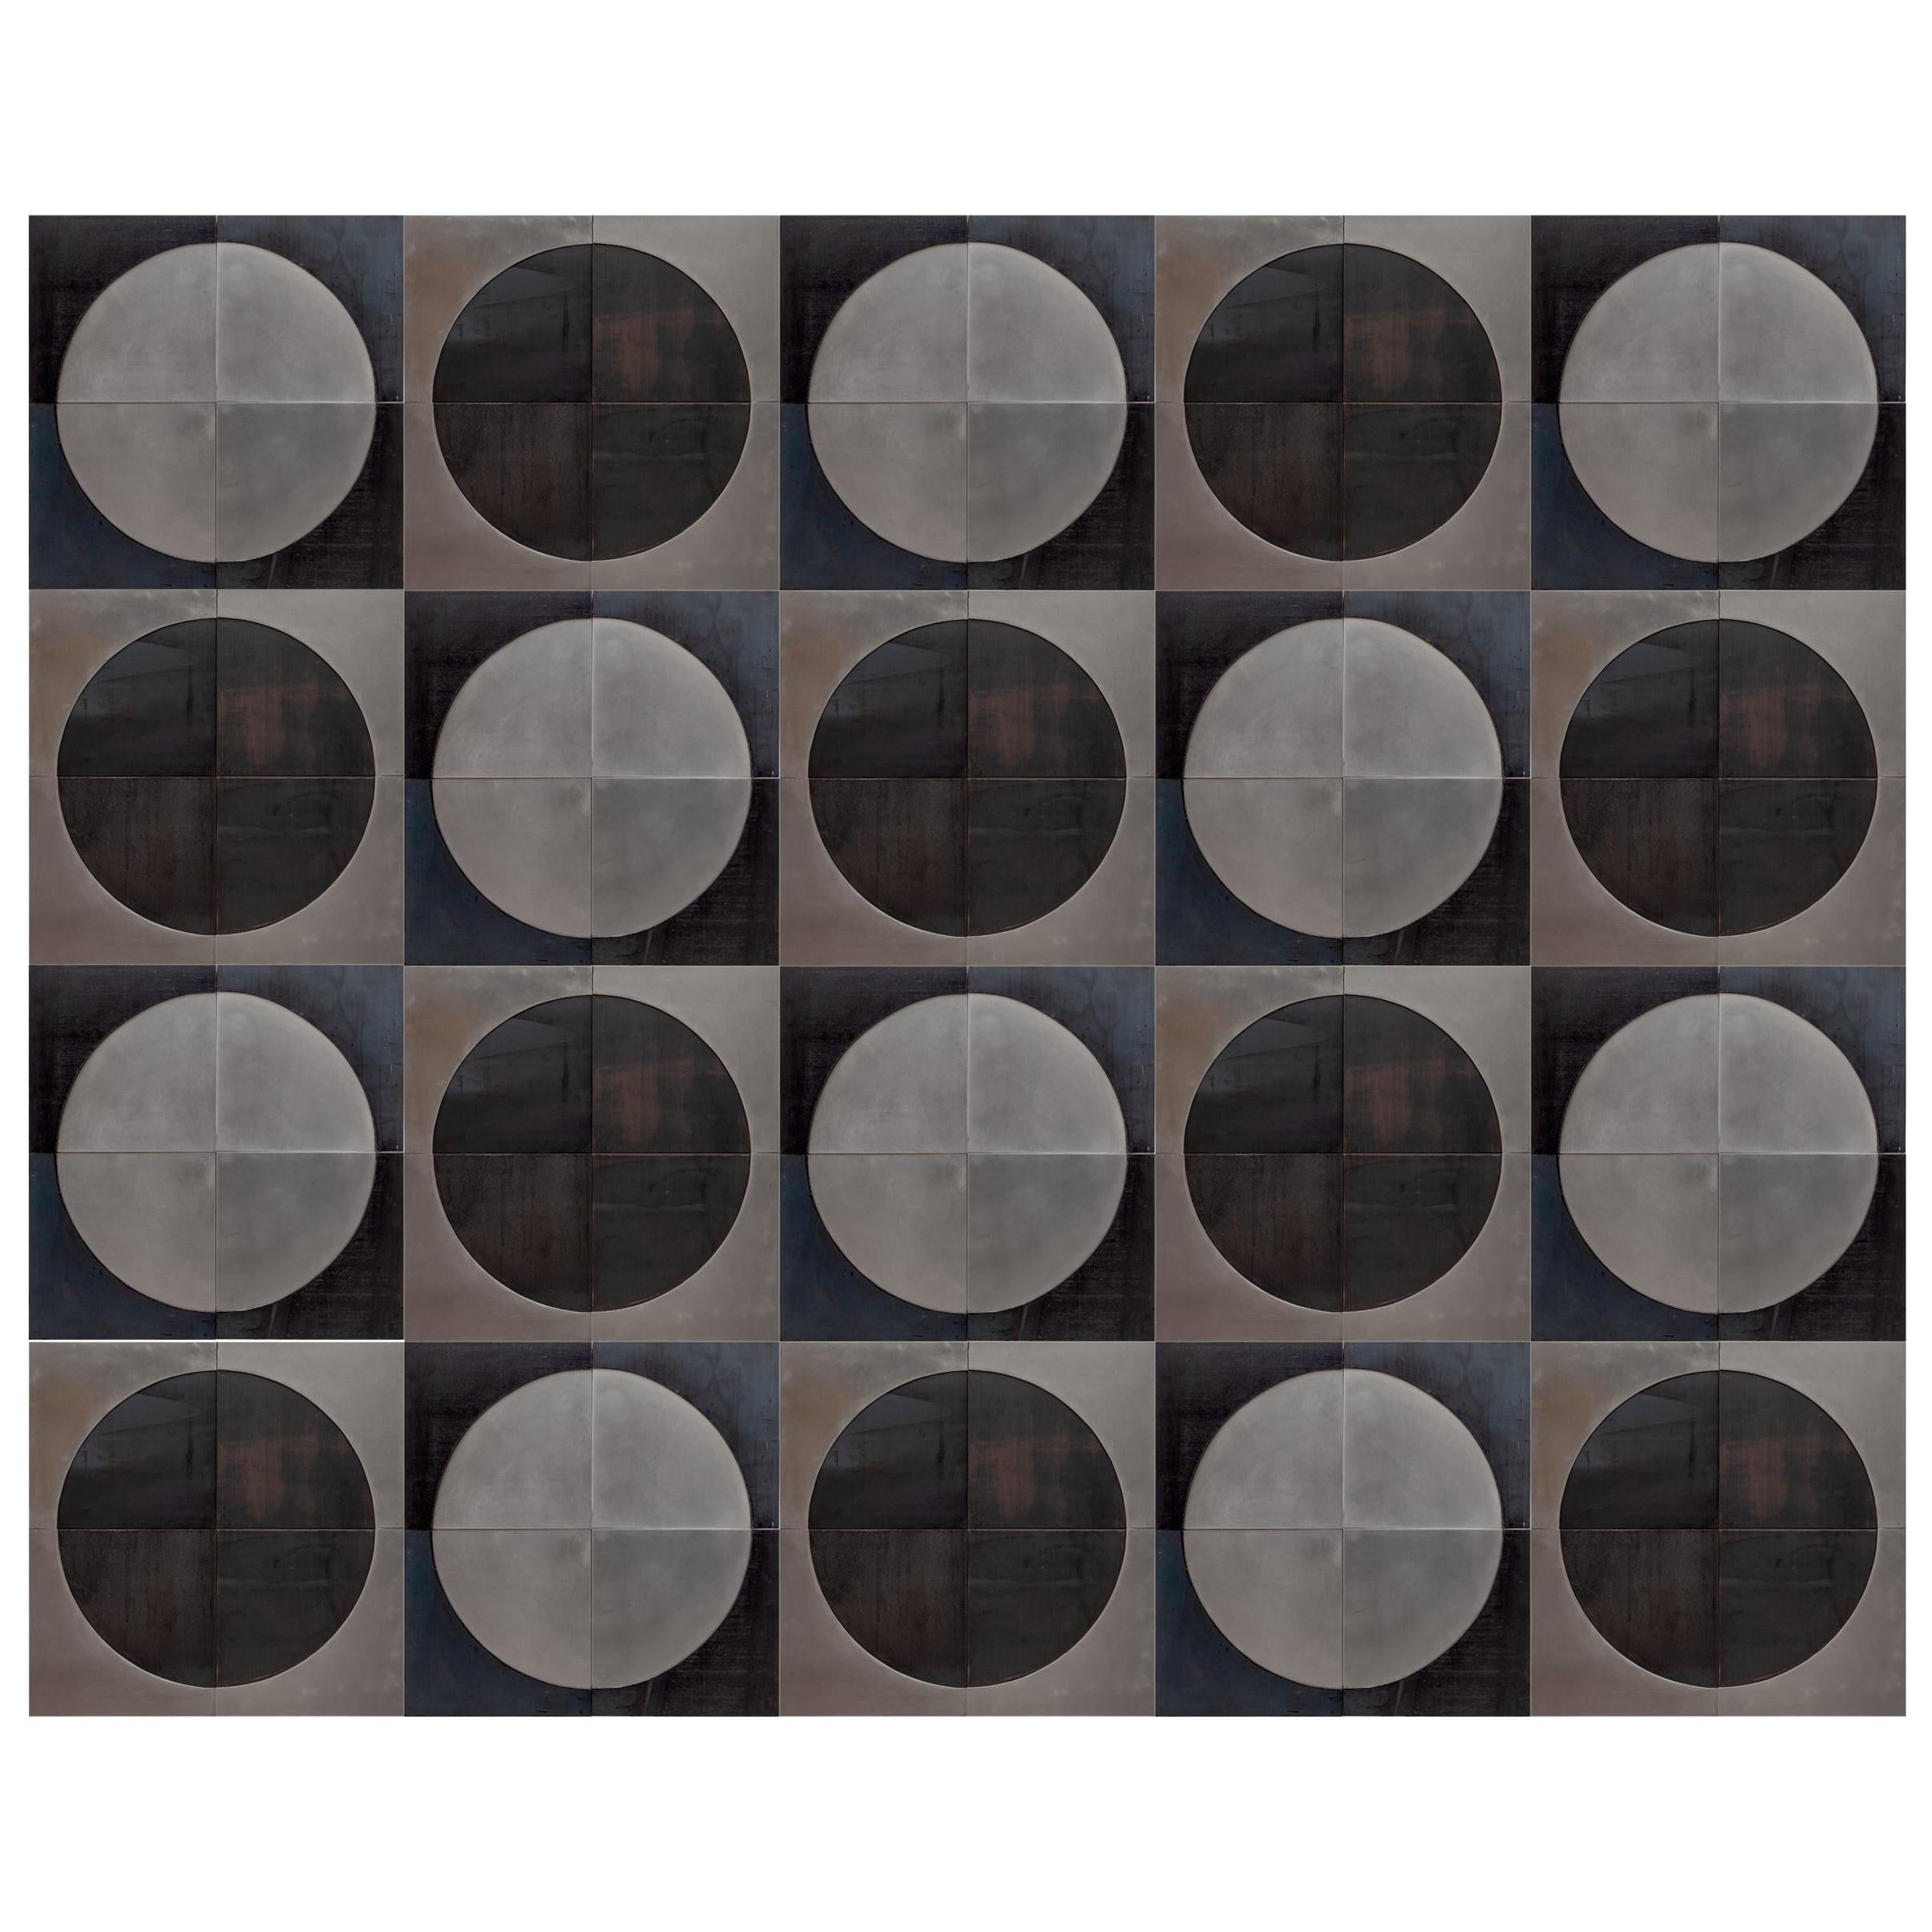 Modern Brutalist Art Wall Decoration in Metal Black and Silver, 1960s, Belgium